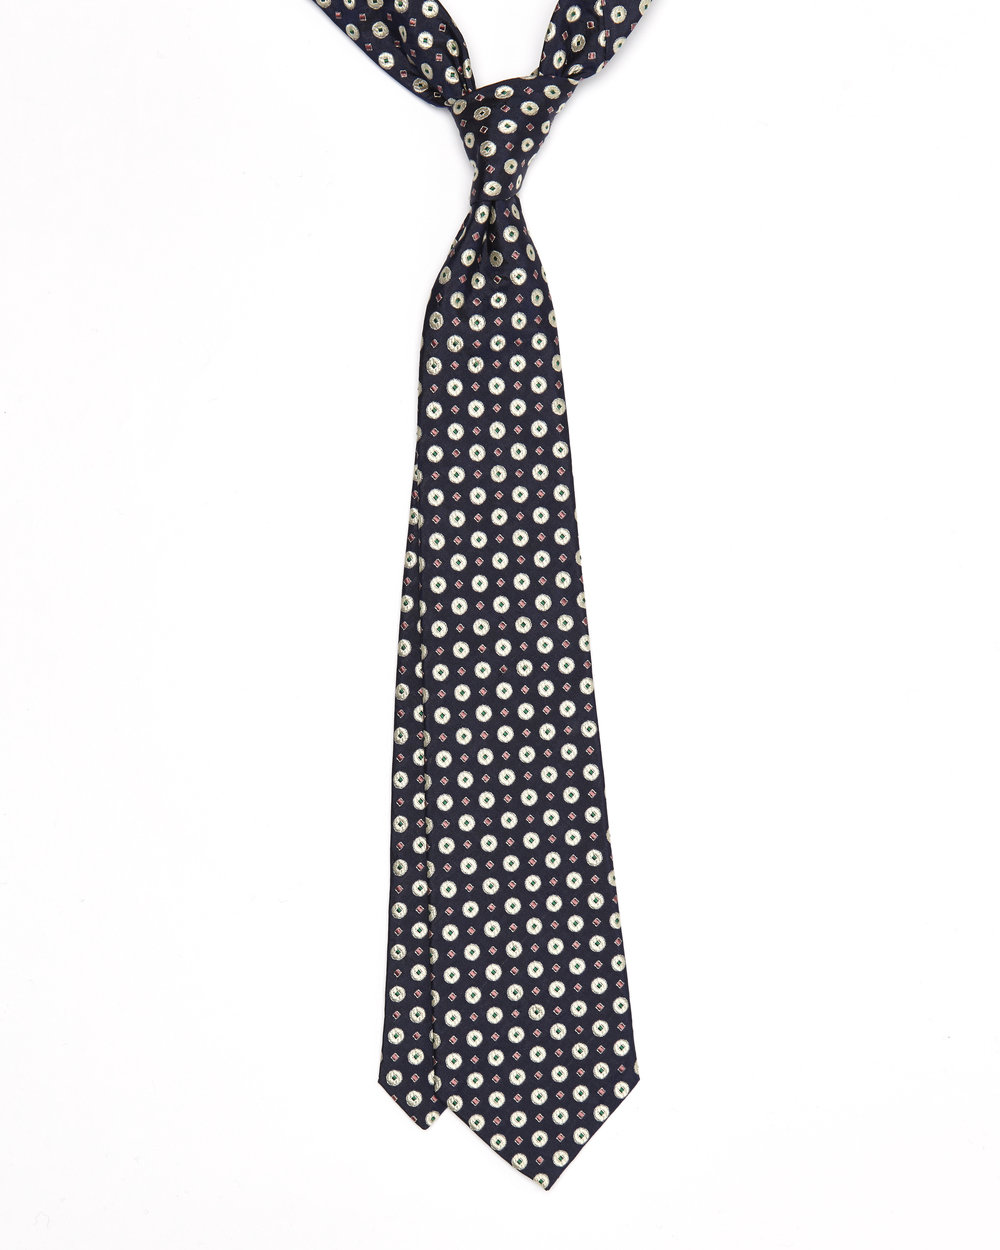 The Oscar Tie has white dots, with green and pink diamond patterns on a navy background, which will compliment the classic navy suit for an example. Click on photo for more information on this tie.